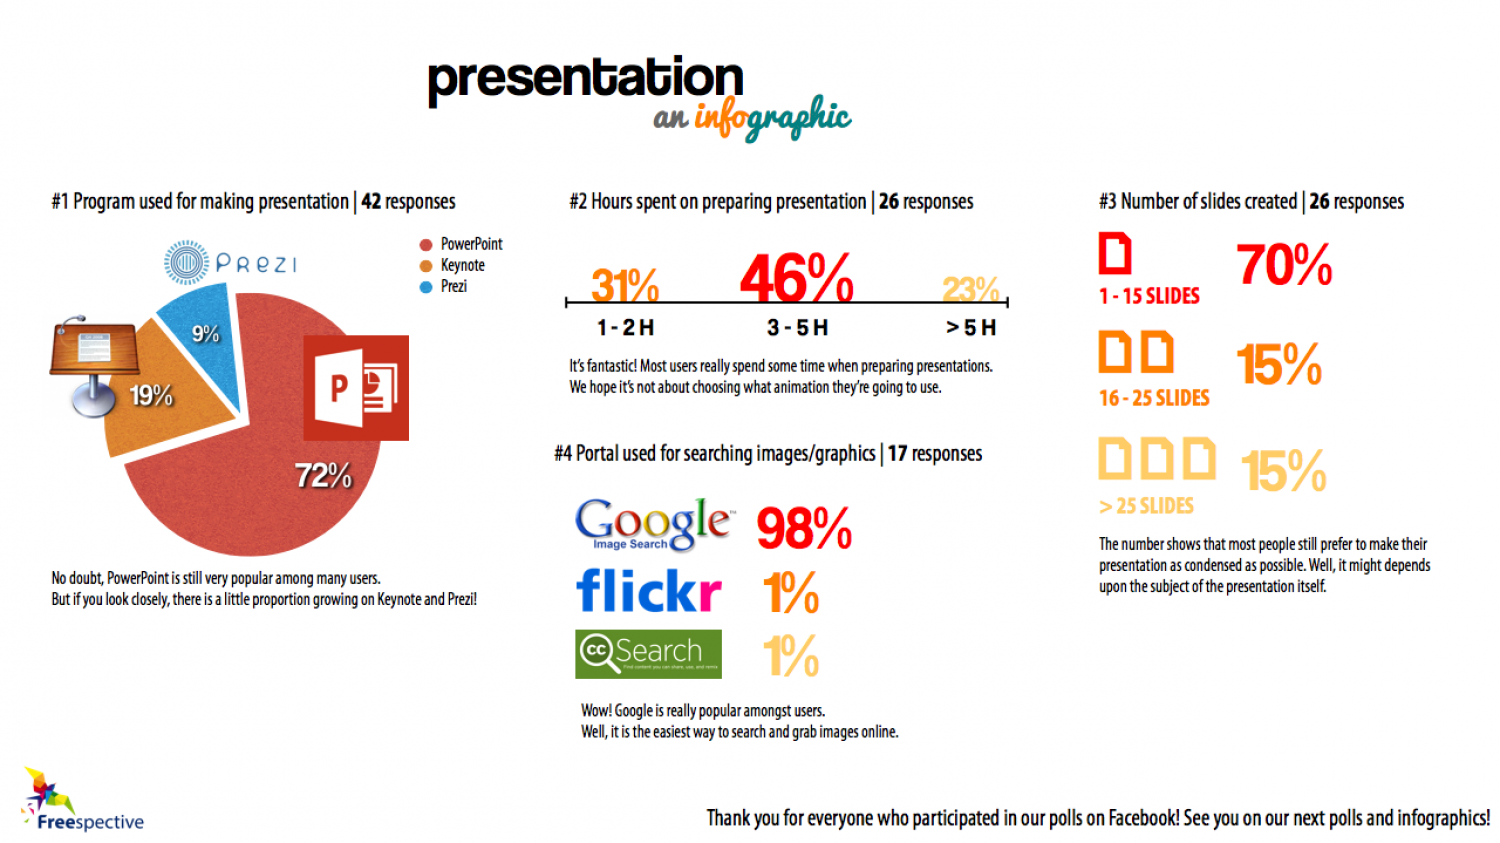 Presentation an Infographic Infographic